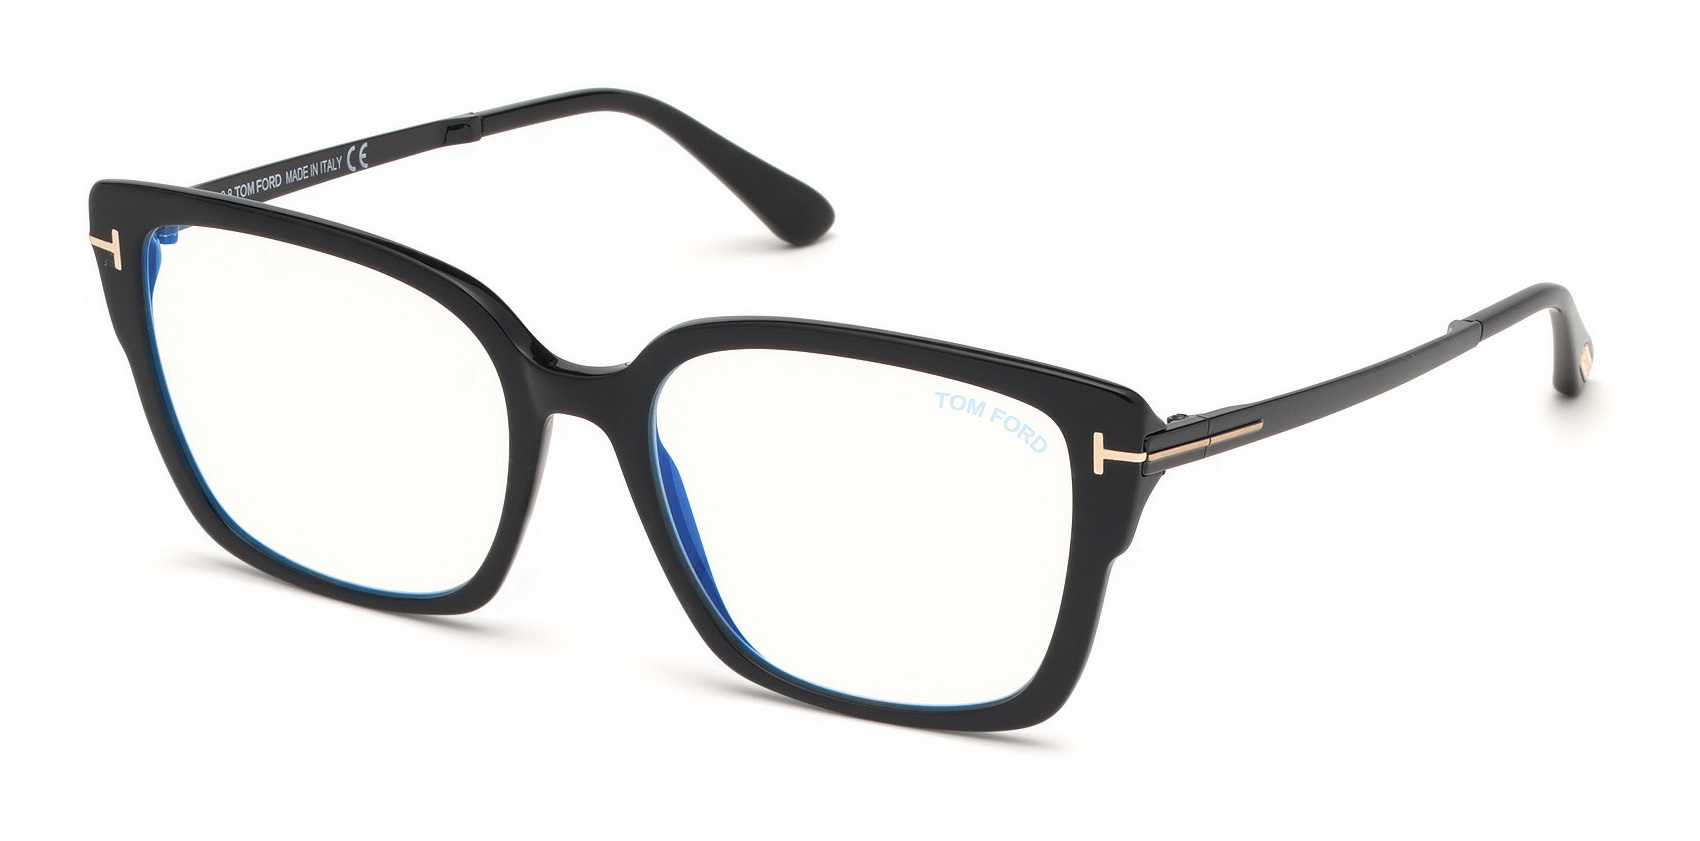 Tom Ford FT5579-B